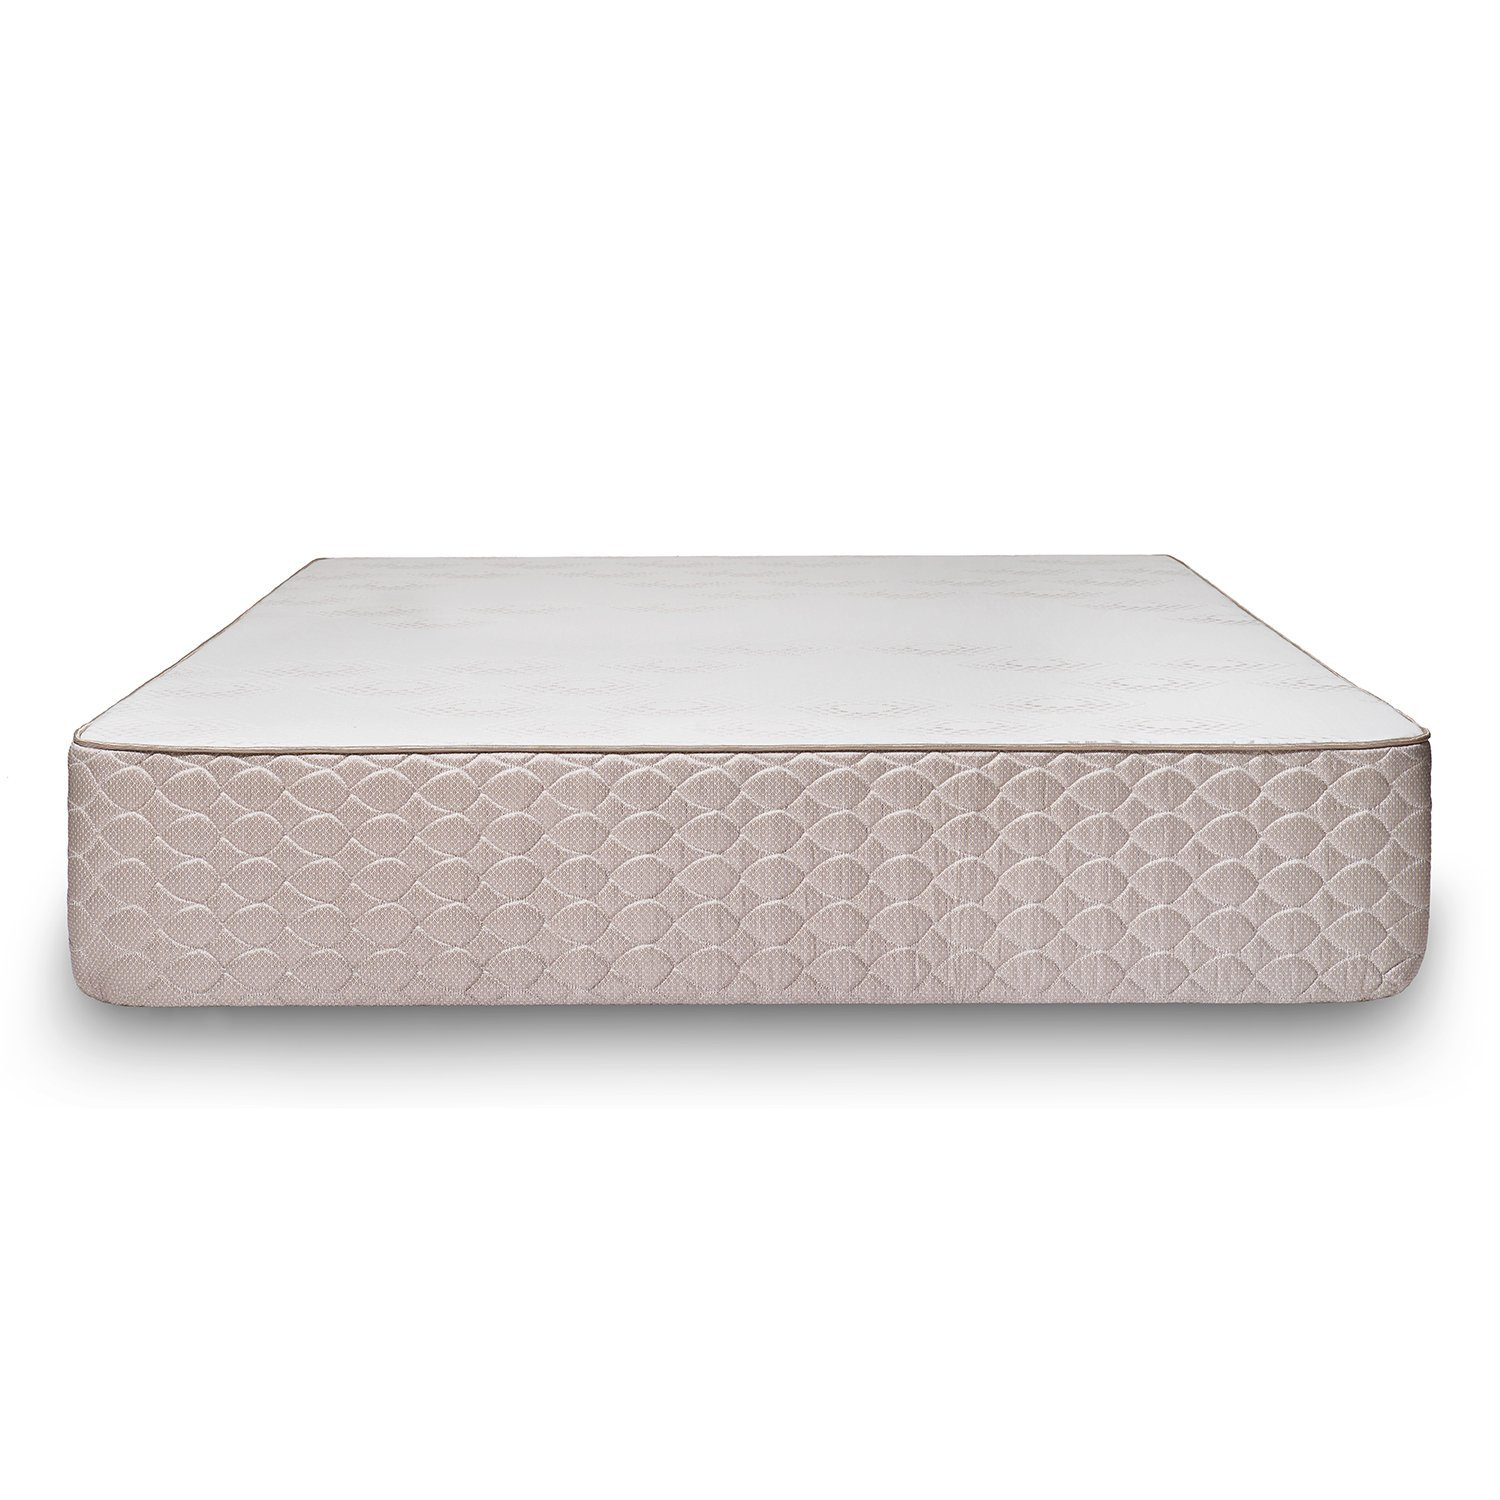 100 casper mattress mold doing hard time on your mattress c